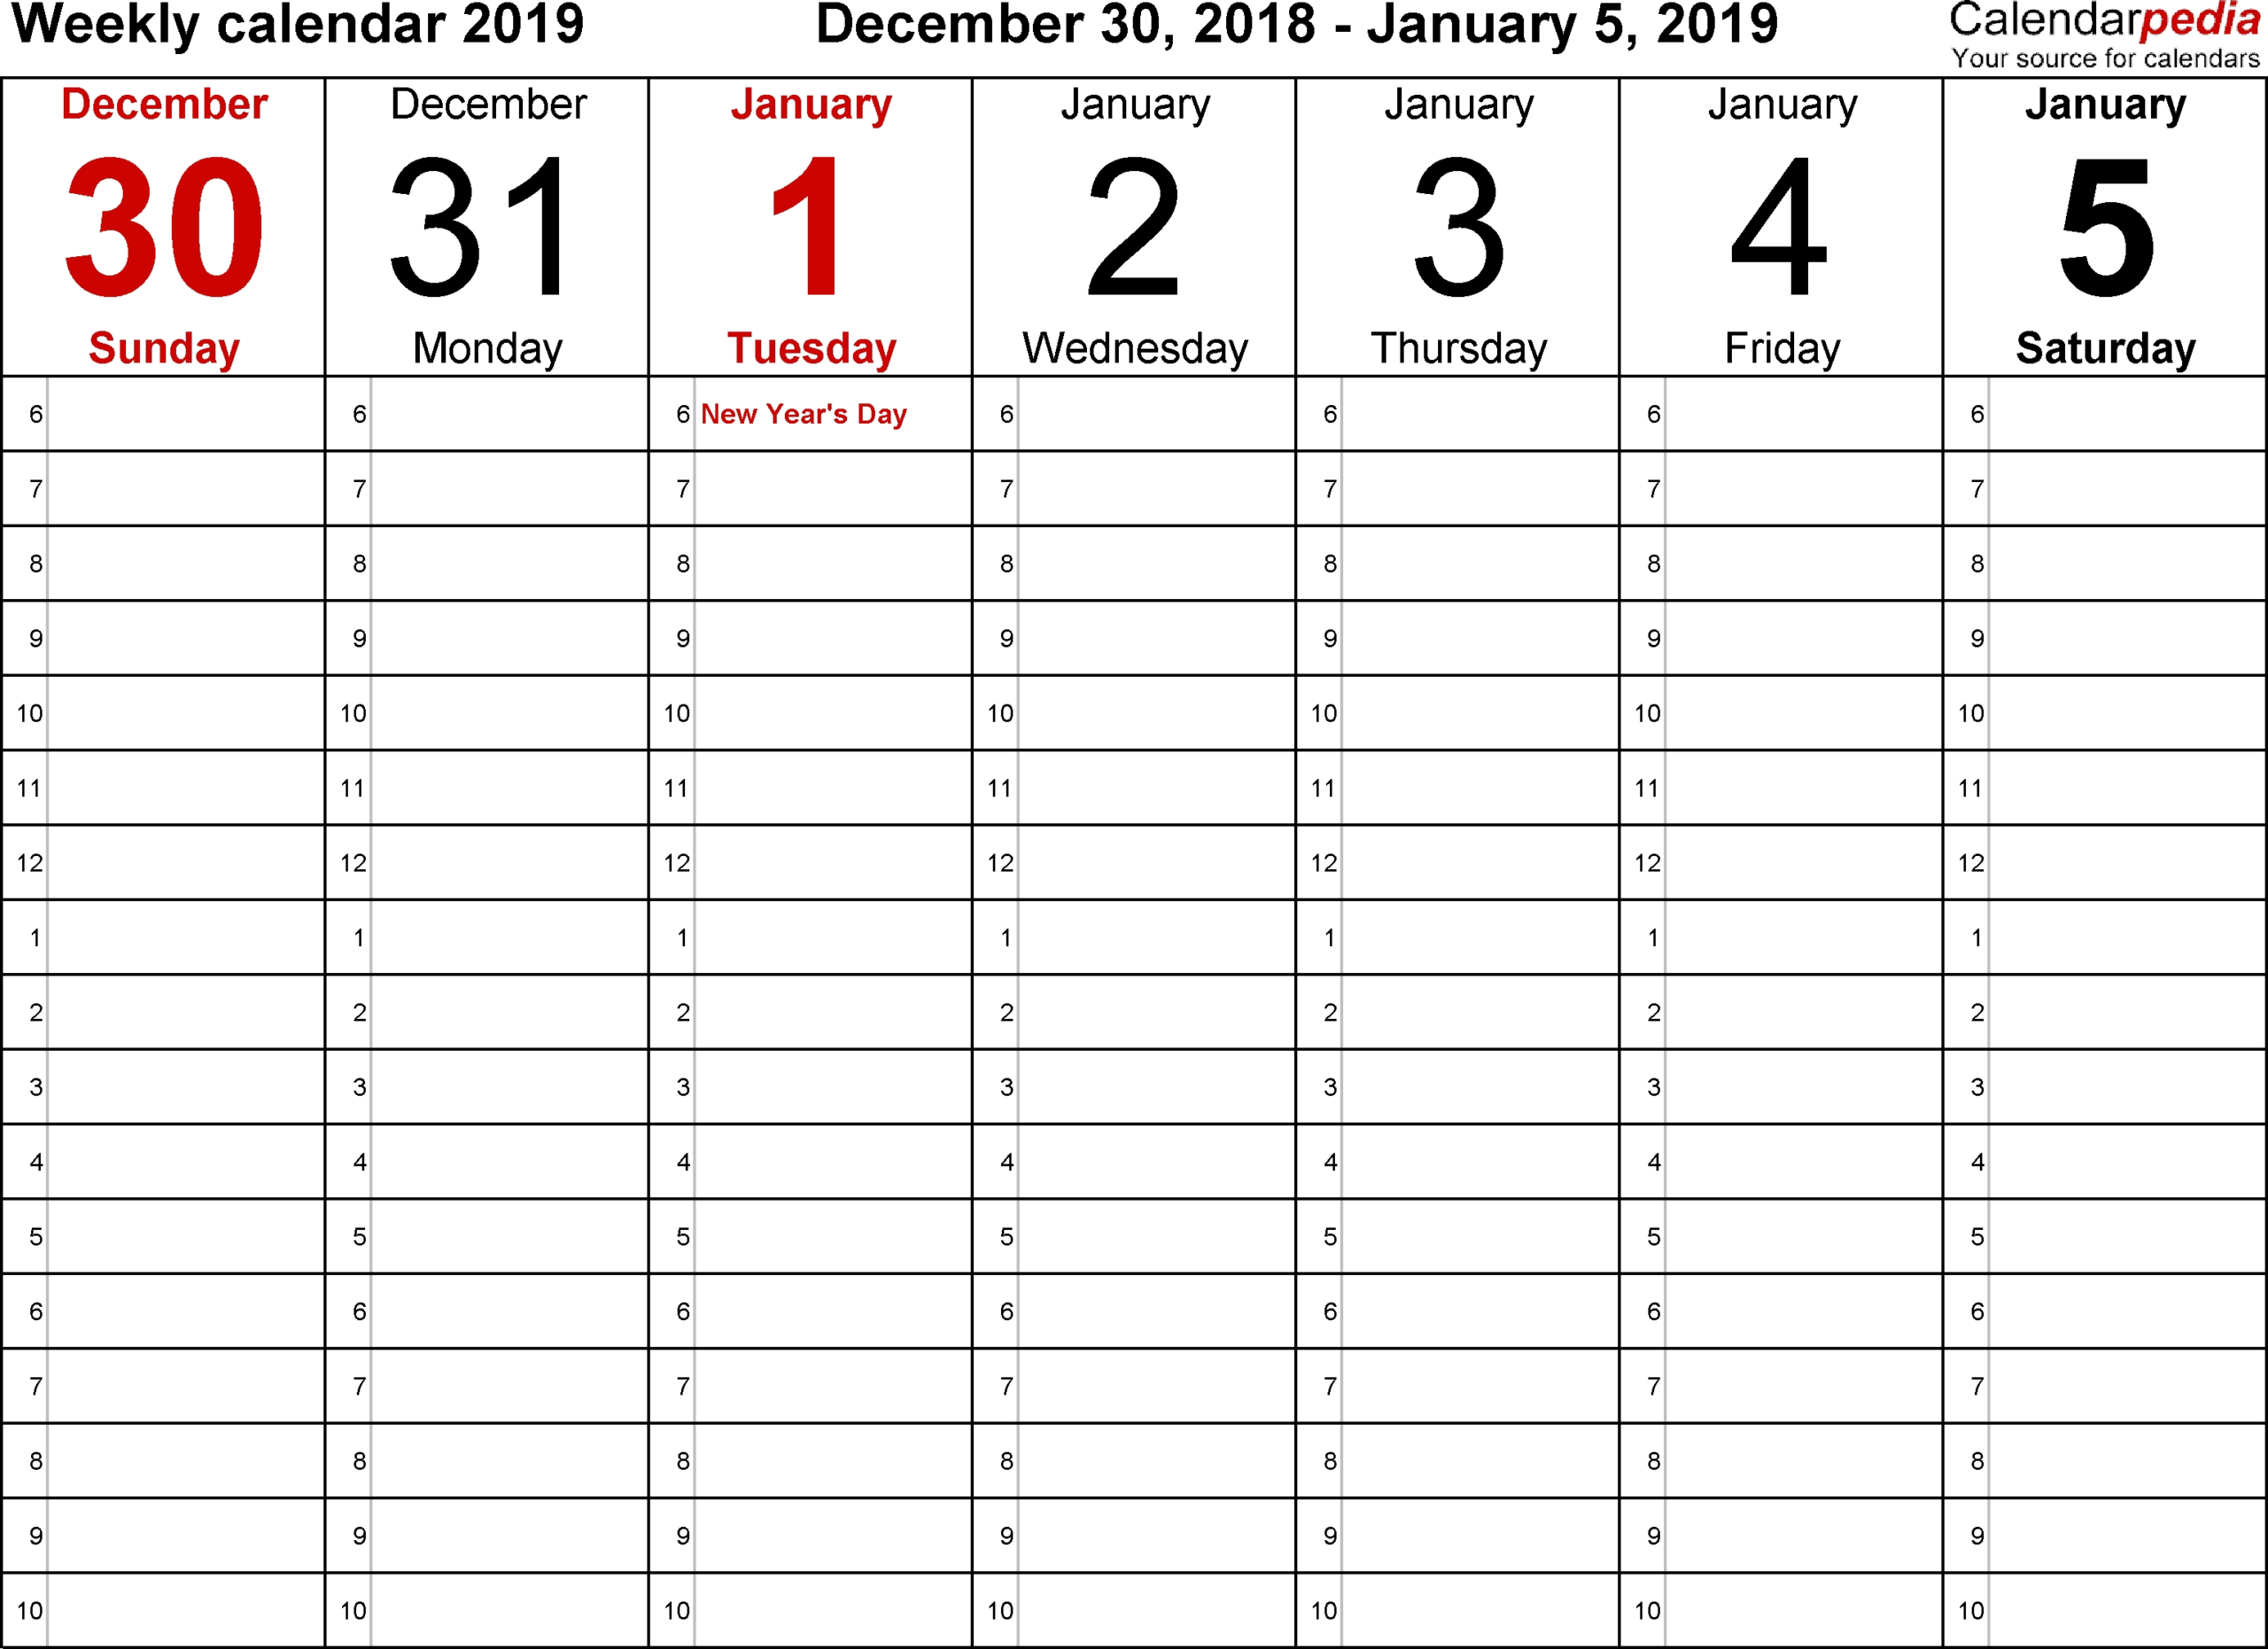 5 Day Week Blank Calendar With Time Slots Printable within Printable Calendar With Time Slots